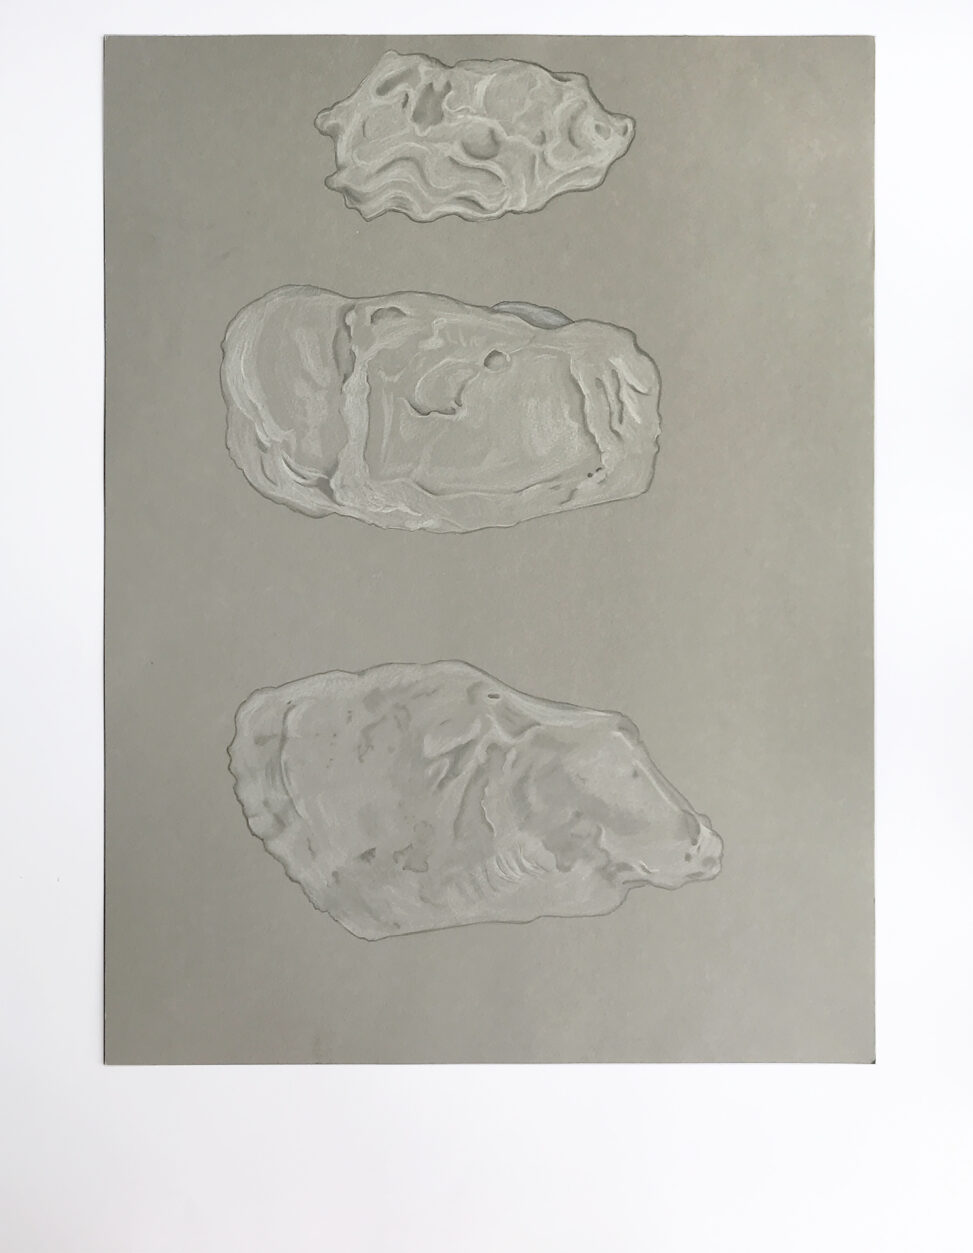 Drawing of three oyster shells on a gray background.